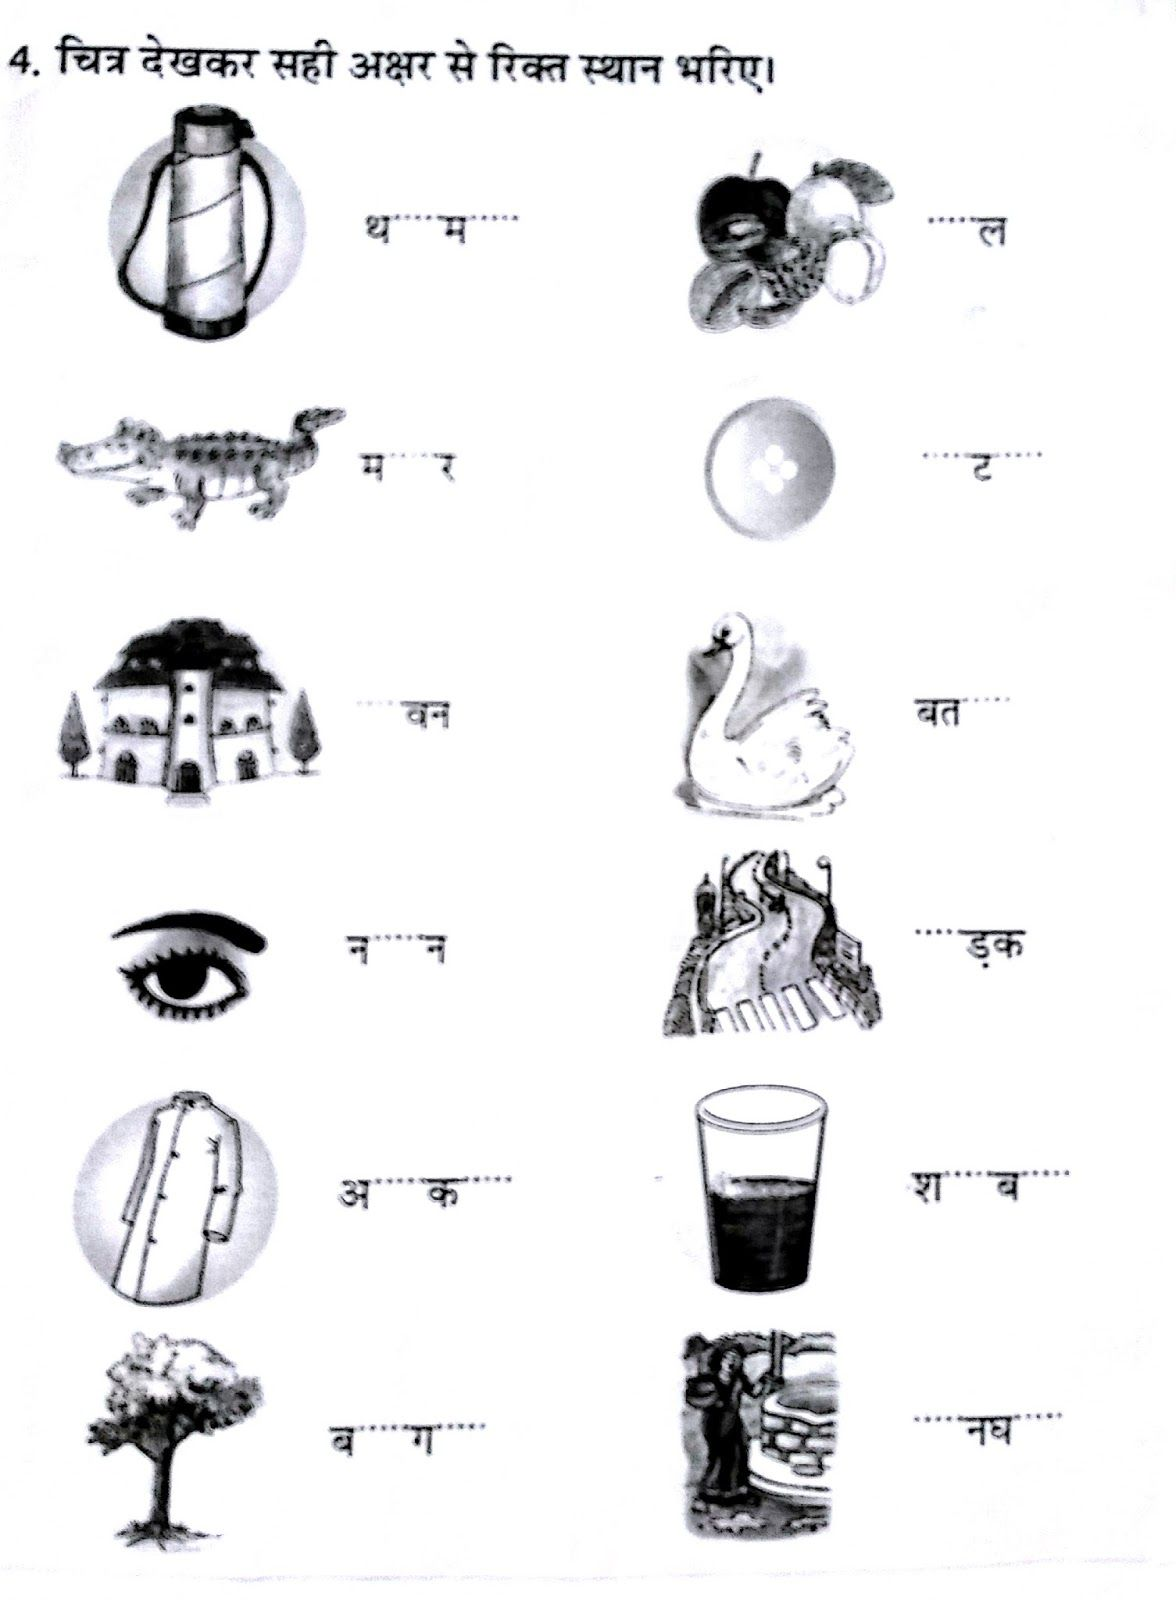 Hindi project Hindi worksheets Hindi alphabet, Hindi